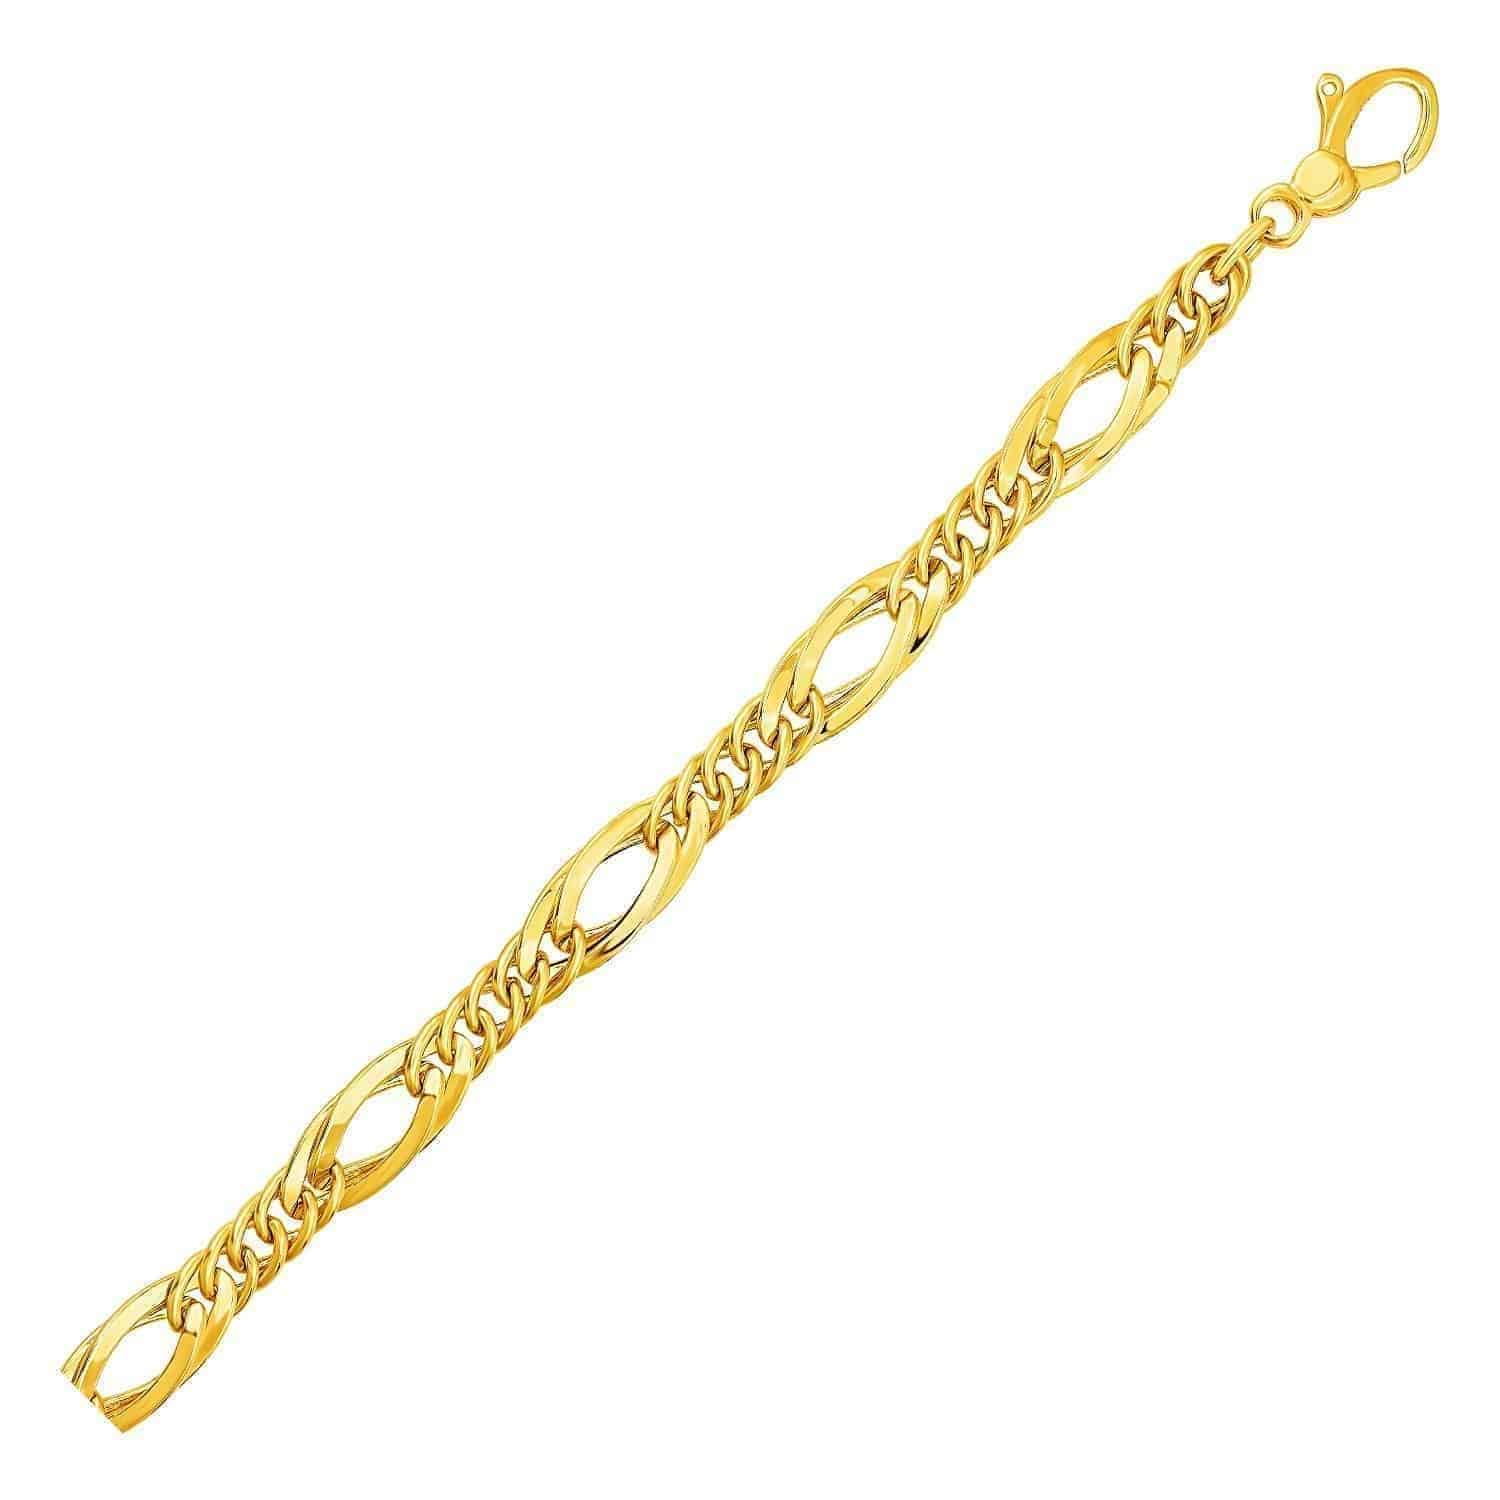 Twisted Oval Chain Bracelet in 14k Yellow Gold